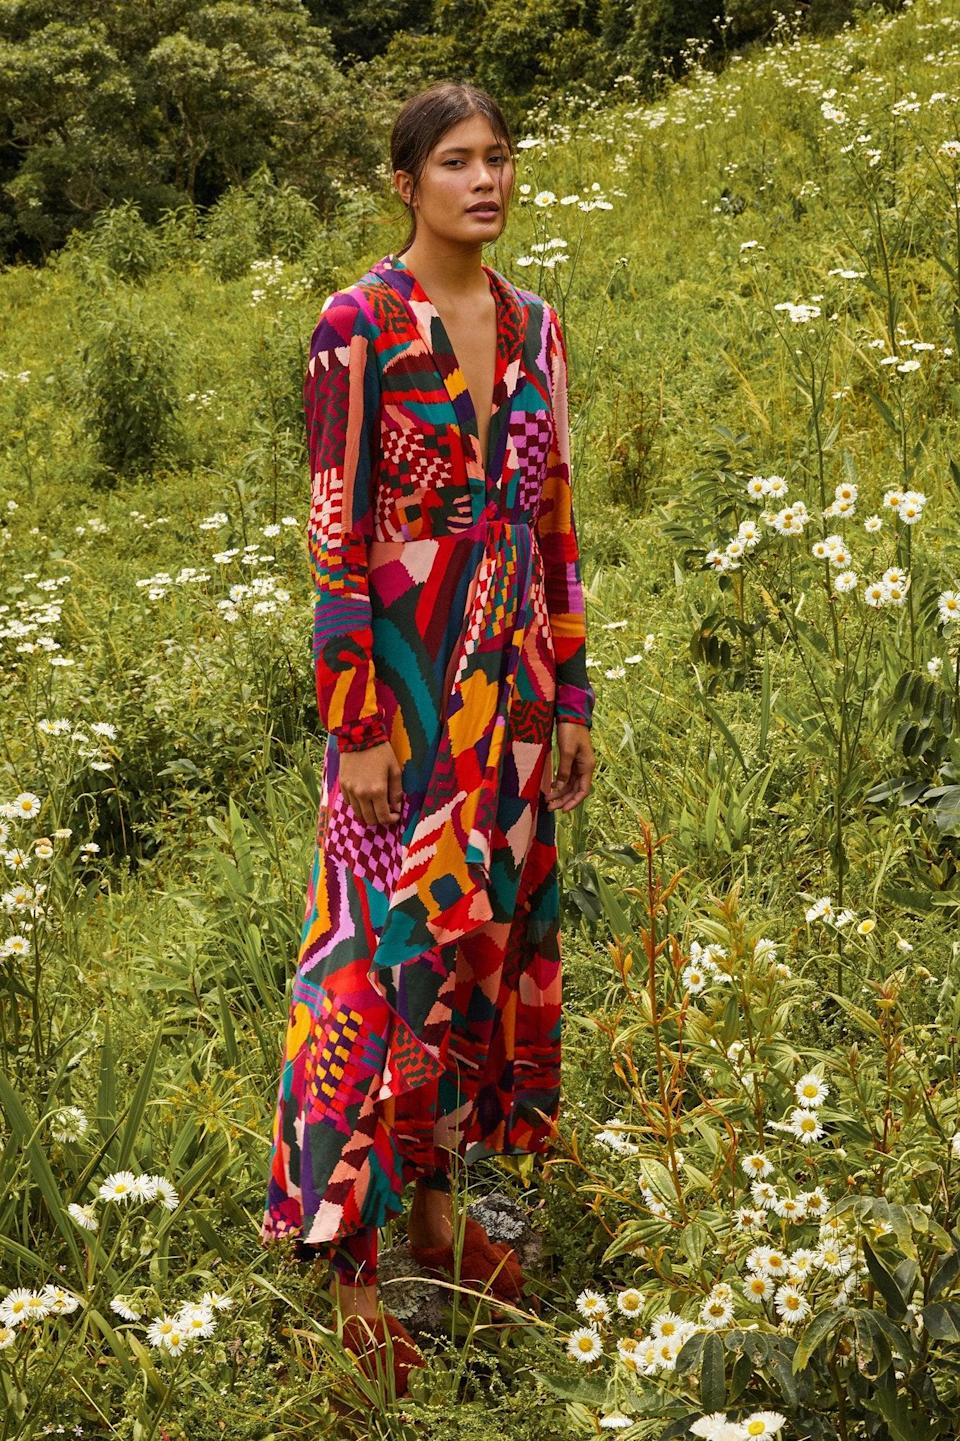 """<h2>Fall Wedding-Guest Maxi Dresses</h2><br>Modest? Sure. But, these elegant long-sleeve maxi dresses are anything but frumpy. <br><br><strong>Farm Rio</strong> red abstract patches maxi dress, $, available at <a href=""""https://go.skimresources.com/?id=30283X879131&url=https%3A%2F%2Fwww.farmrio.com%2Fcollections%2Fdresses%2Fproducts%2Fred-abstract-patches-maxi-dress"""" rel=""""nofollow noopener"""" target=""""_blank"""" data-ylk=""""slk:Farm Rio"""" class=""""link rapid-noclick-resp"""">Farm Rio</a>"""